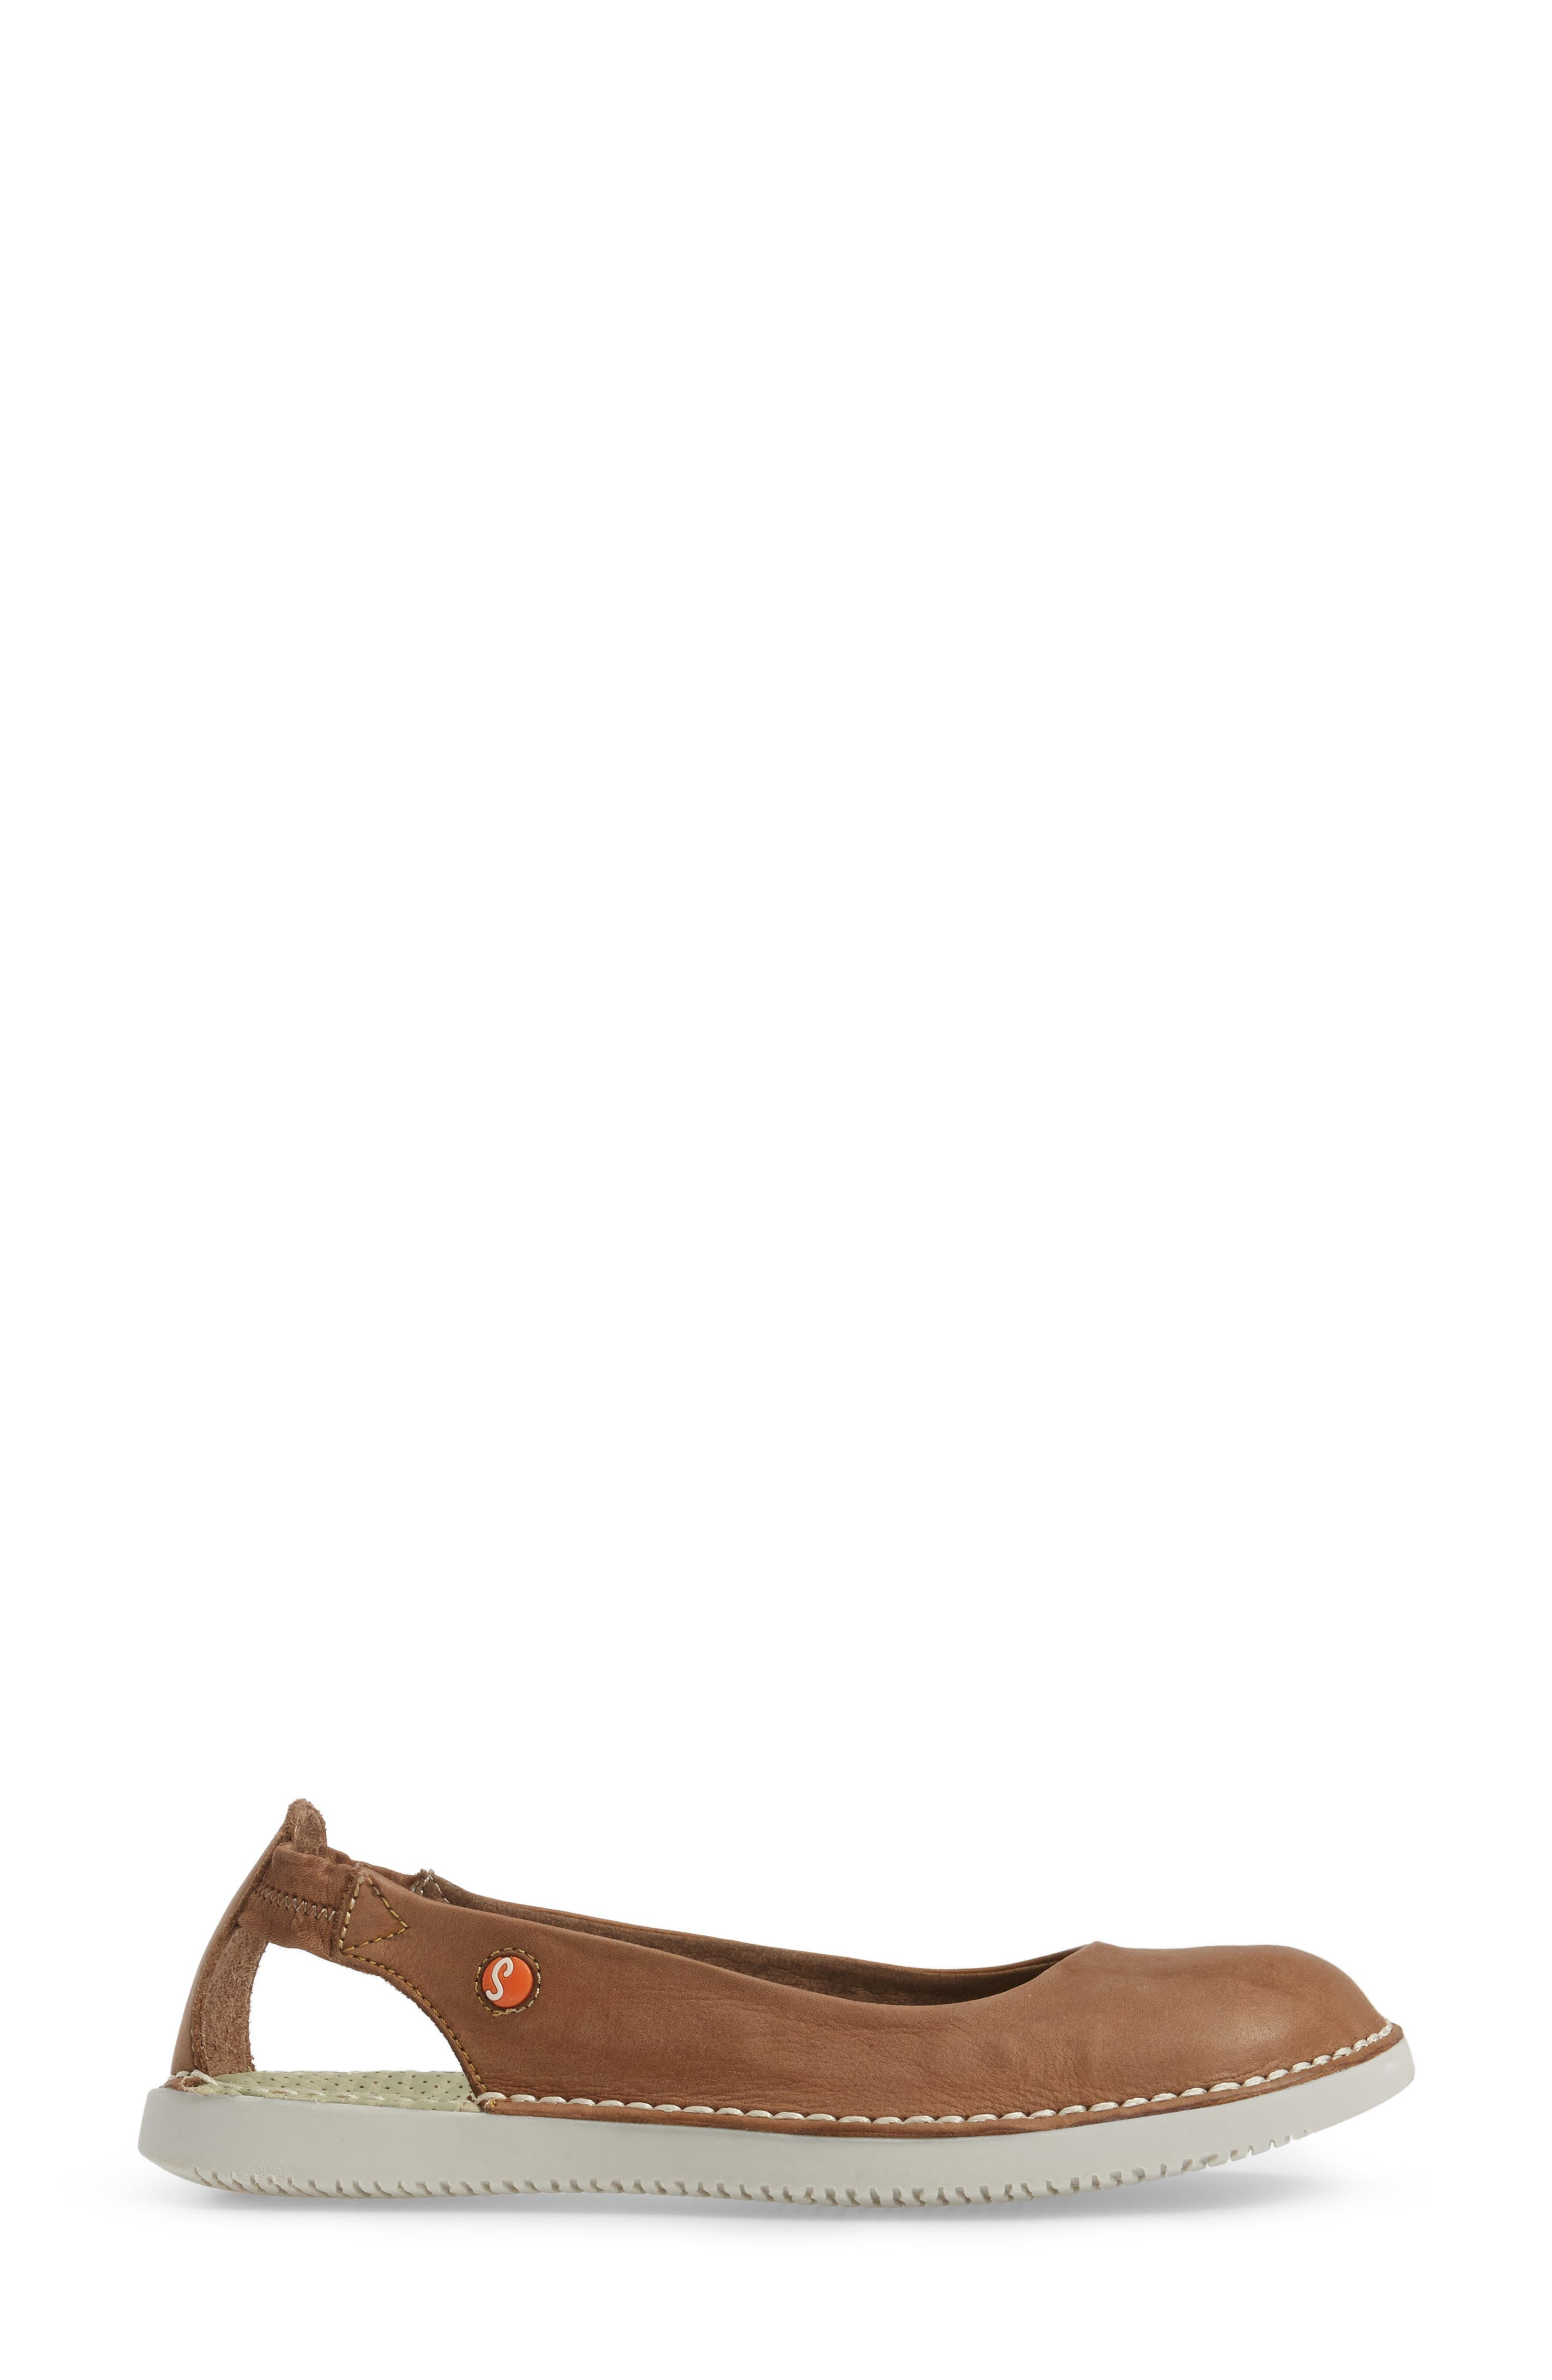 Tor Ballerina Flat,                             Alternate thumbnail 3, color,                             Brown Washed Leather